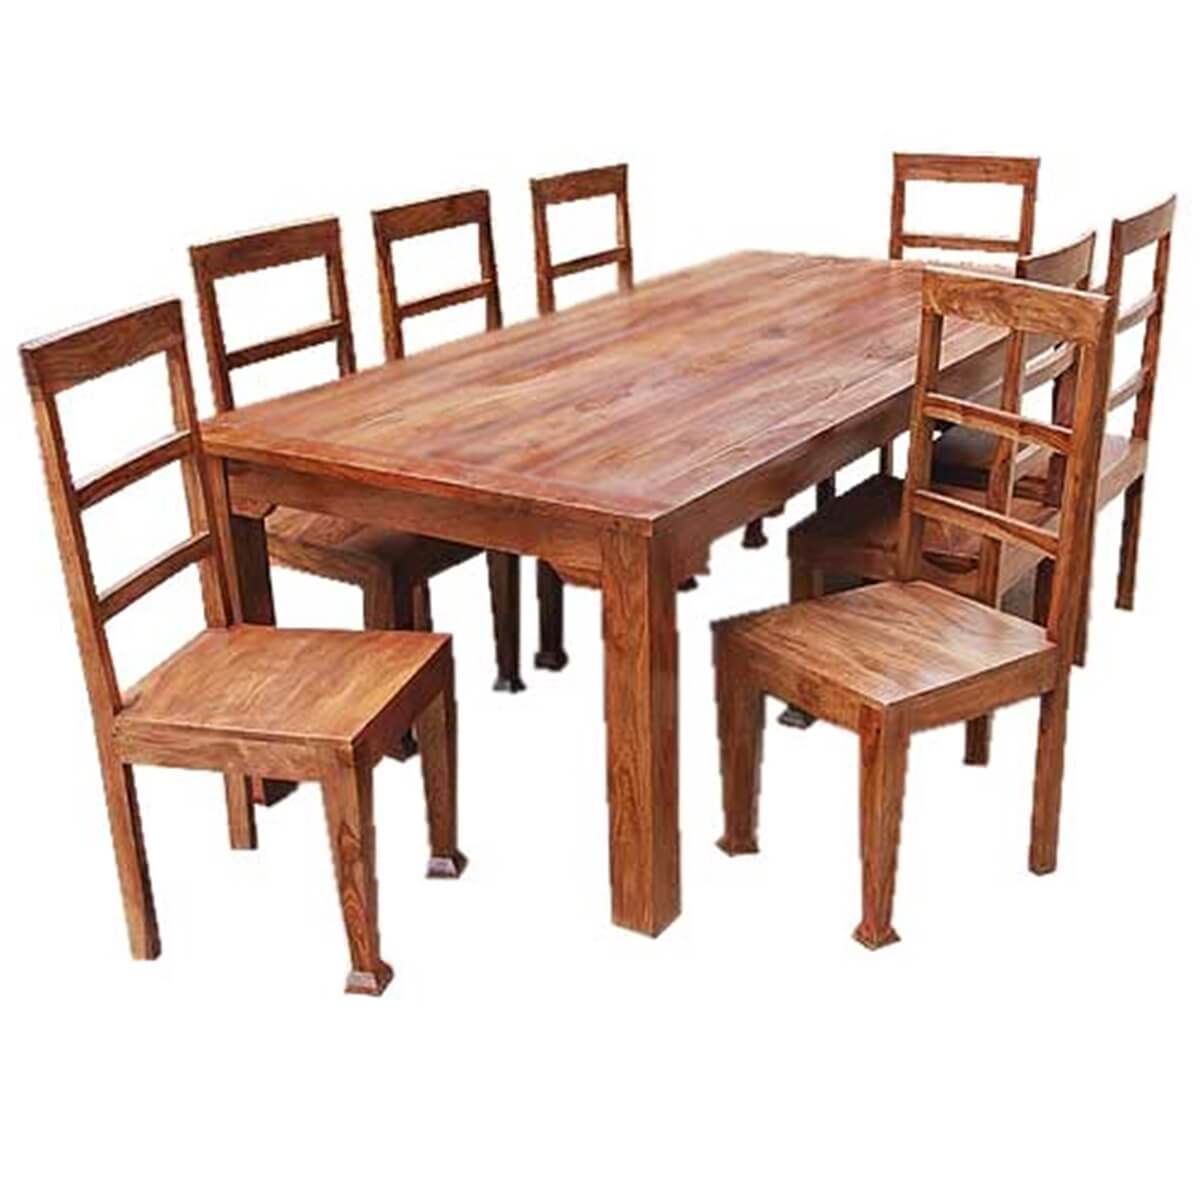 Dining table dining table size 8 people for Dining table length